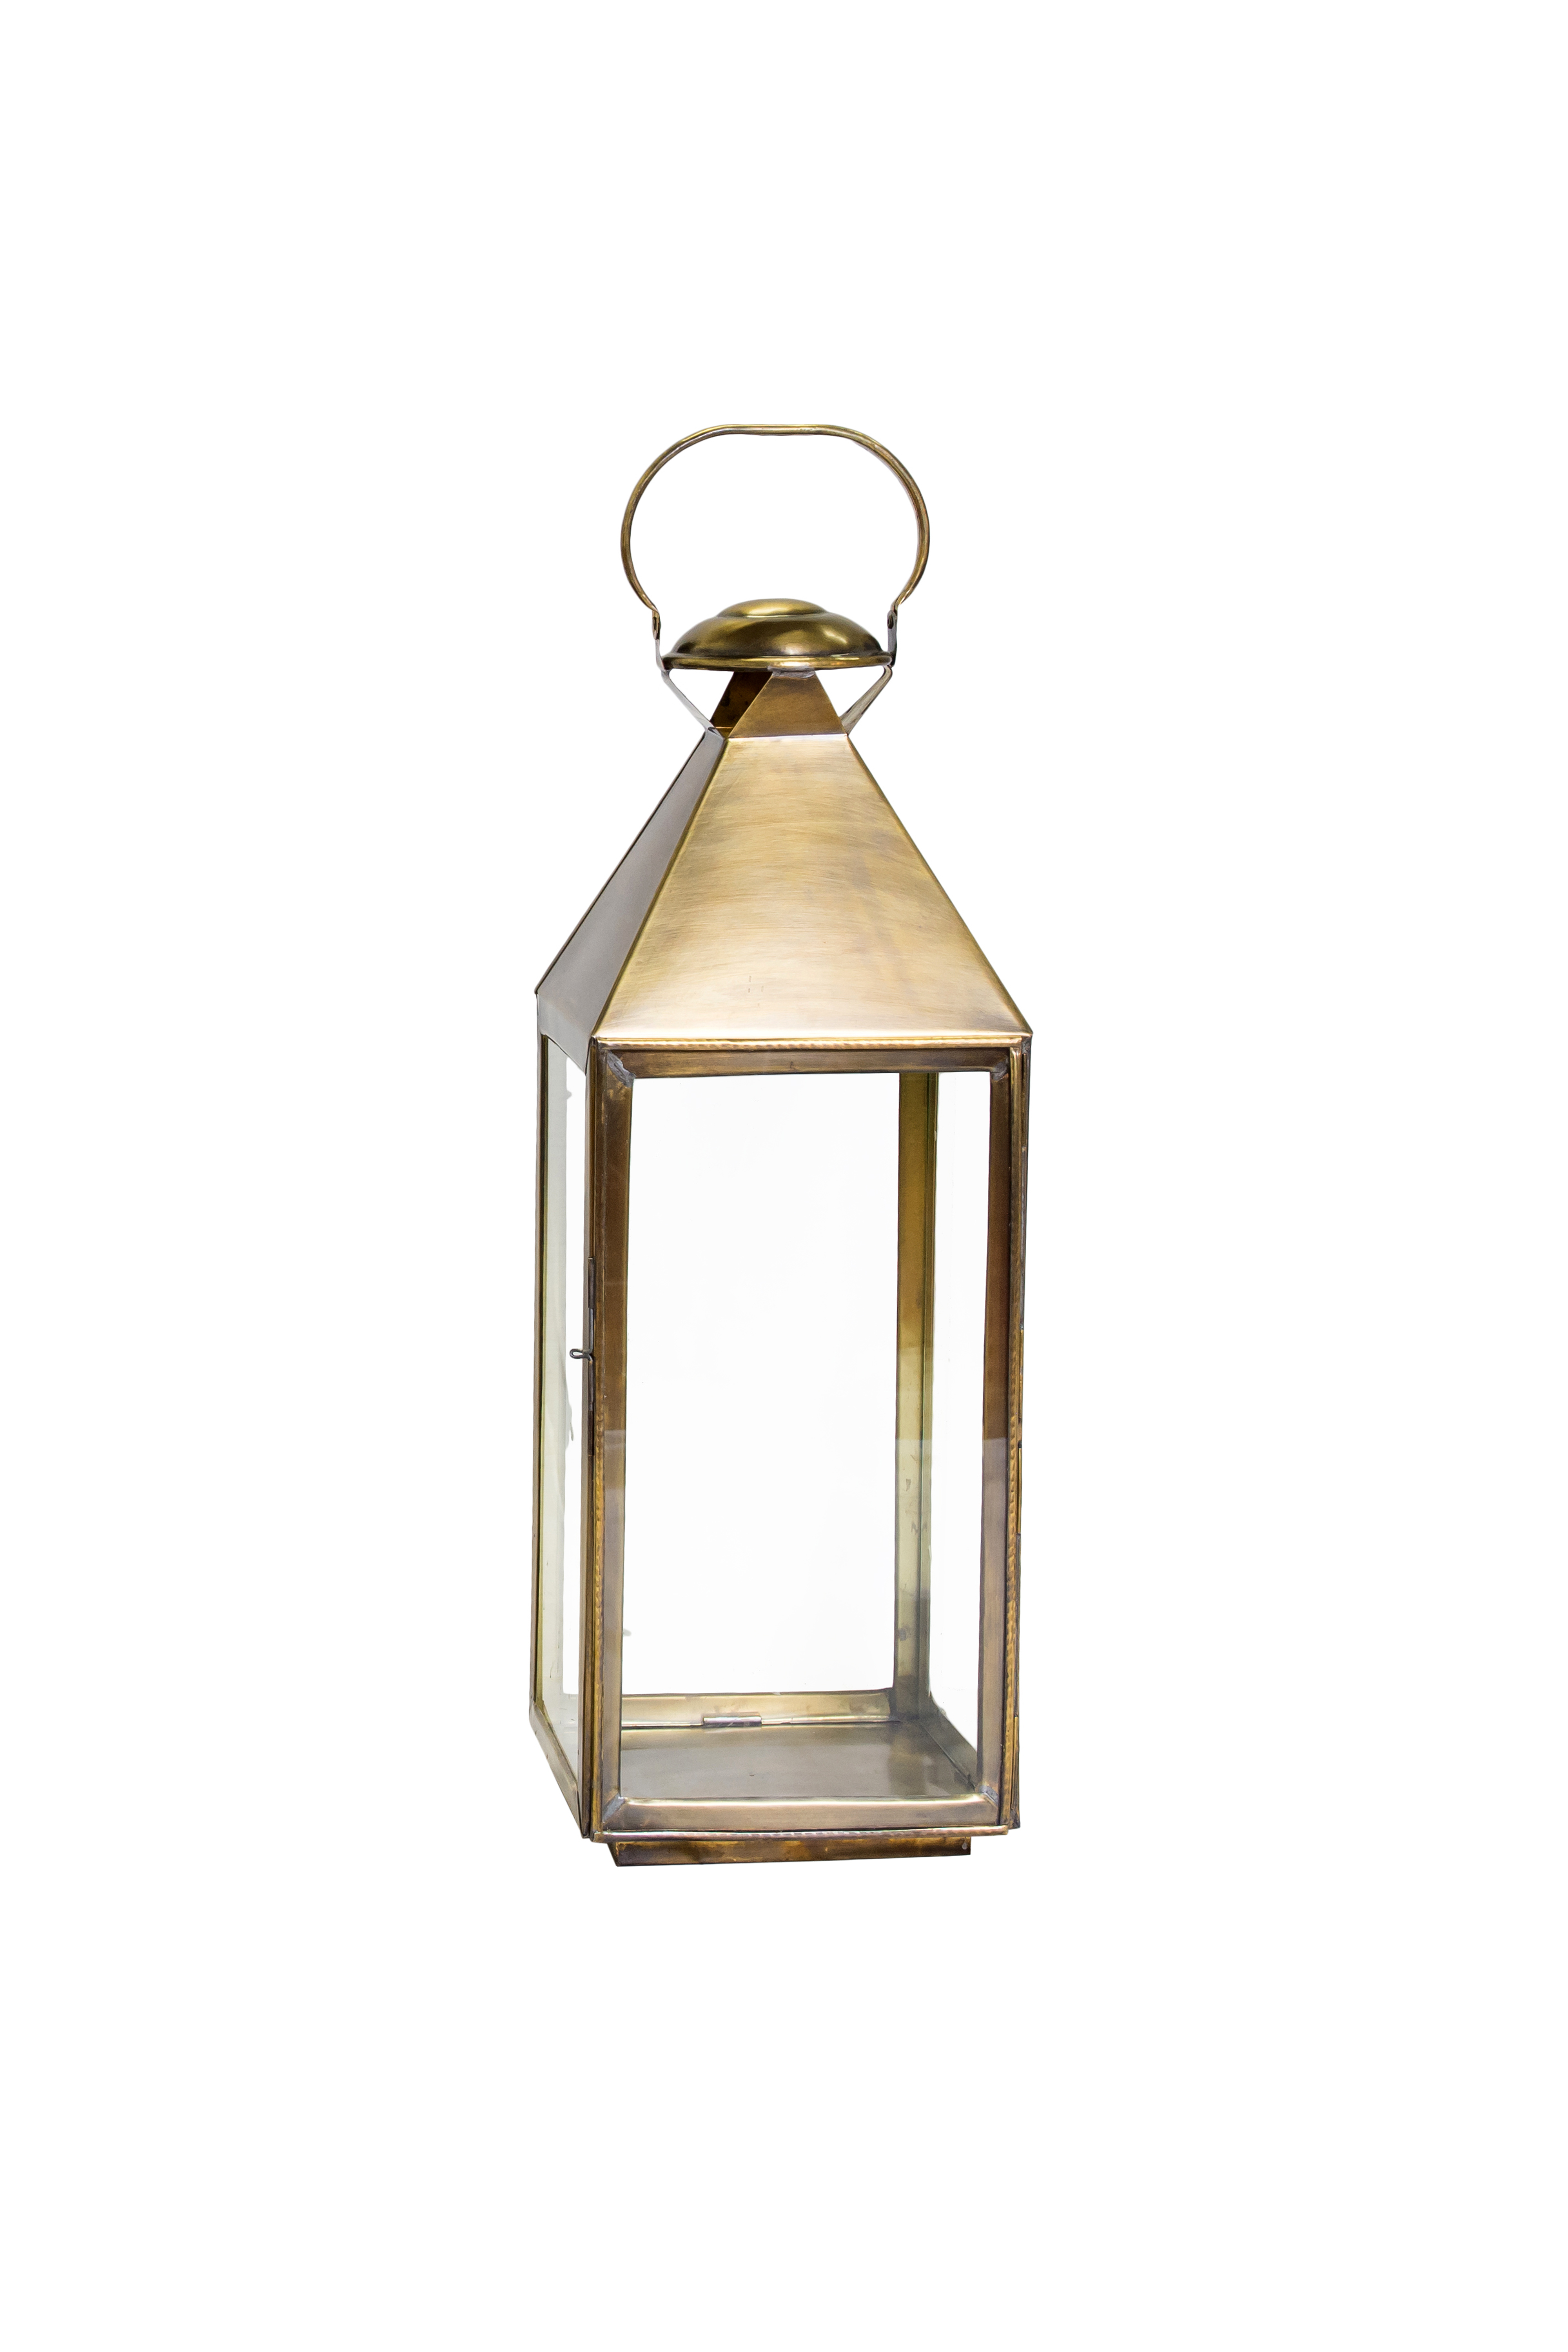 Moroccan Lantern in medium bronze